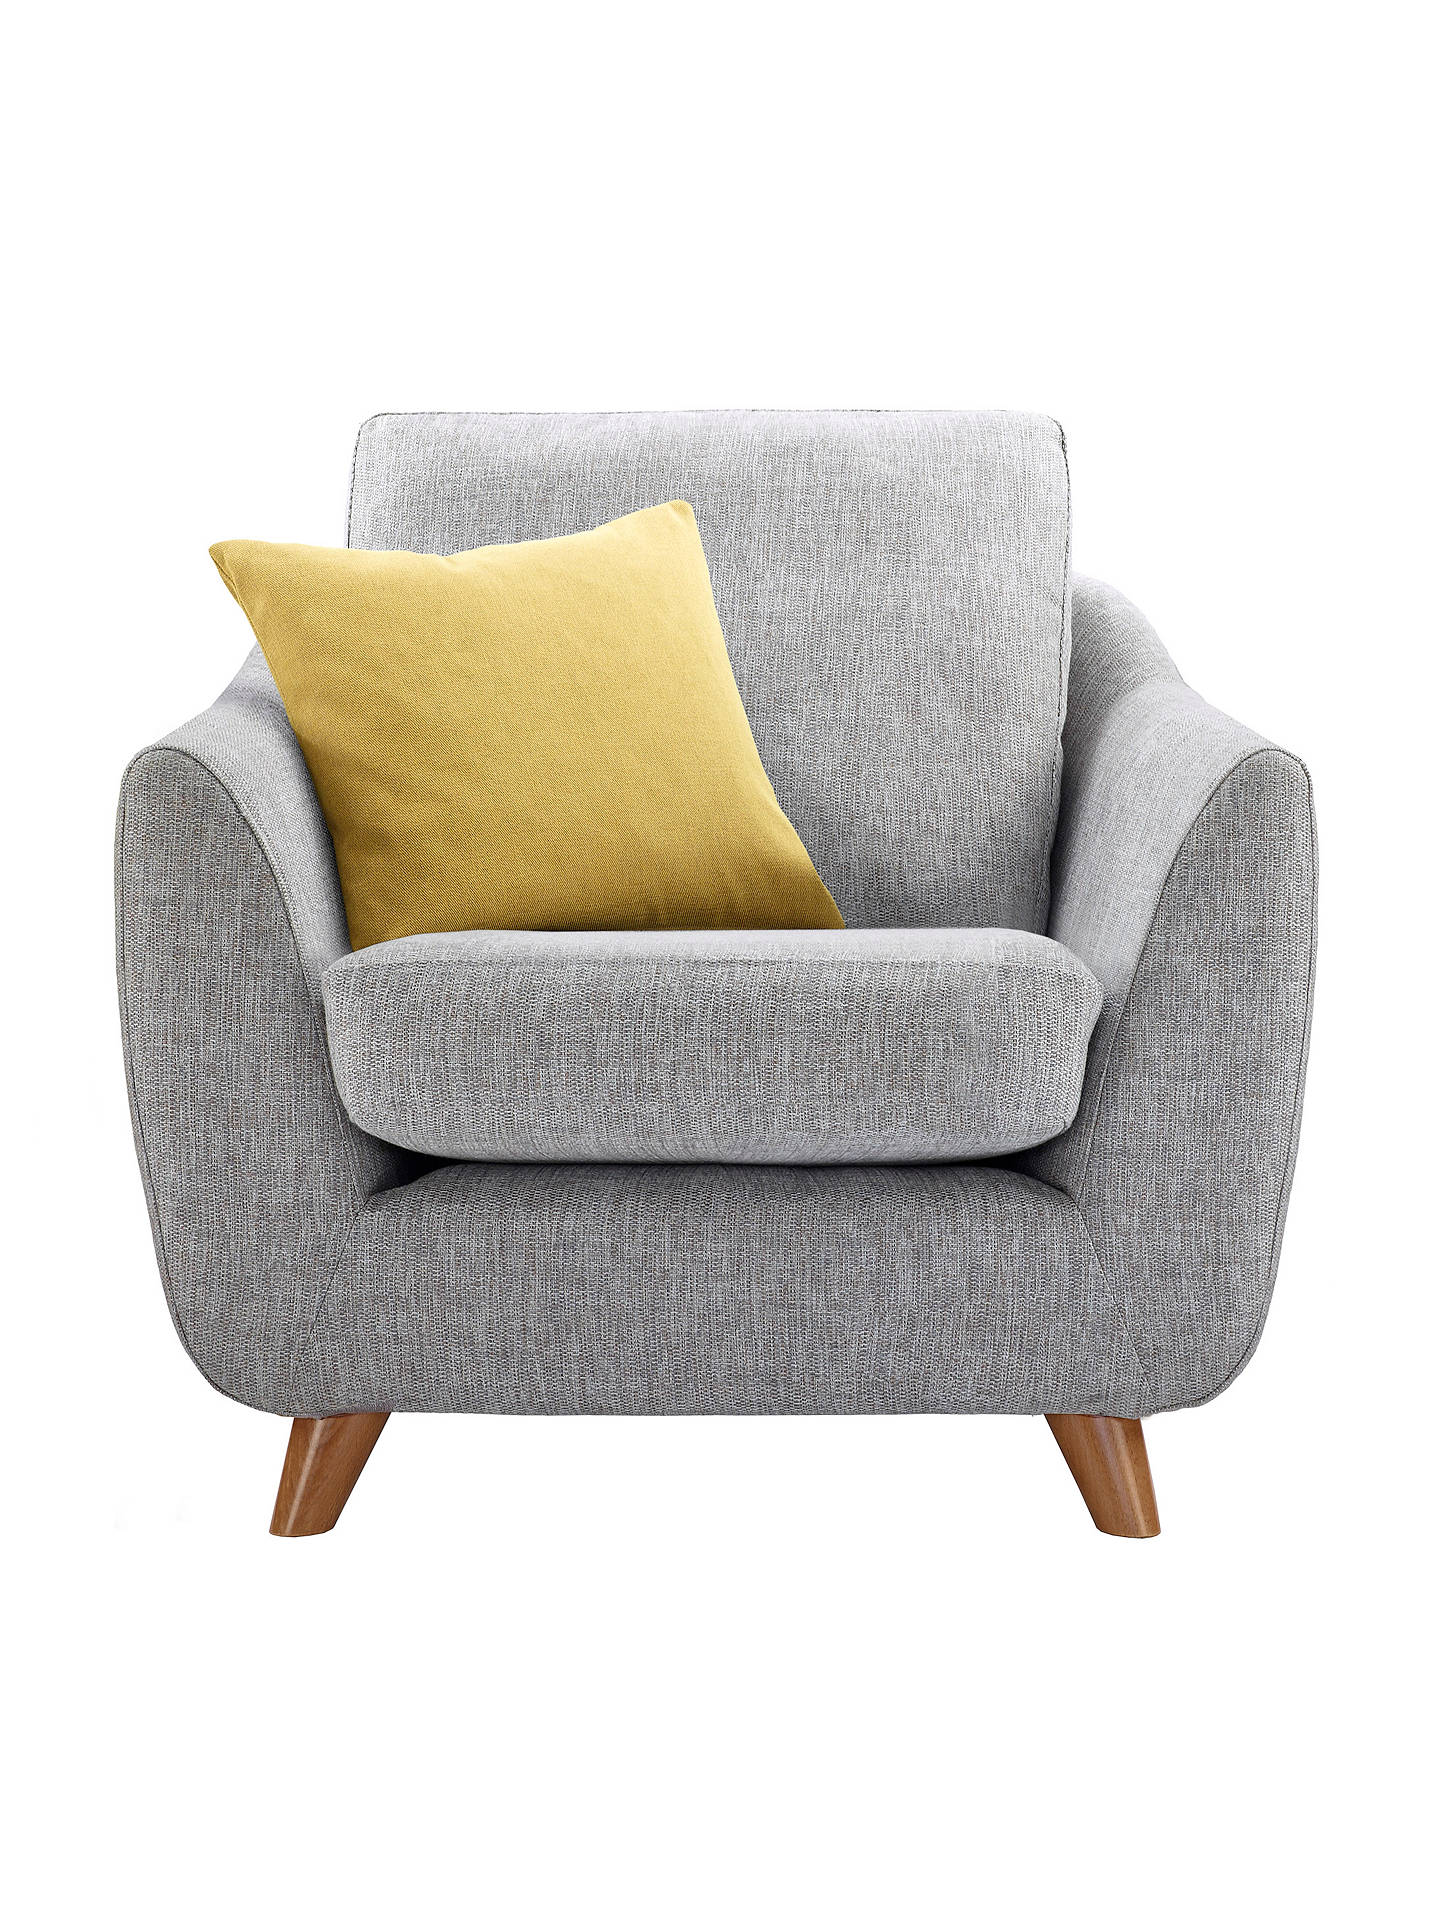 G Plan Vintage The Sixty Seven Armchair, Marl Grey at John ...